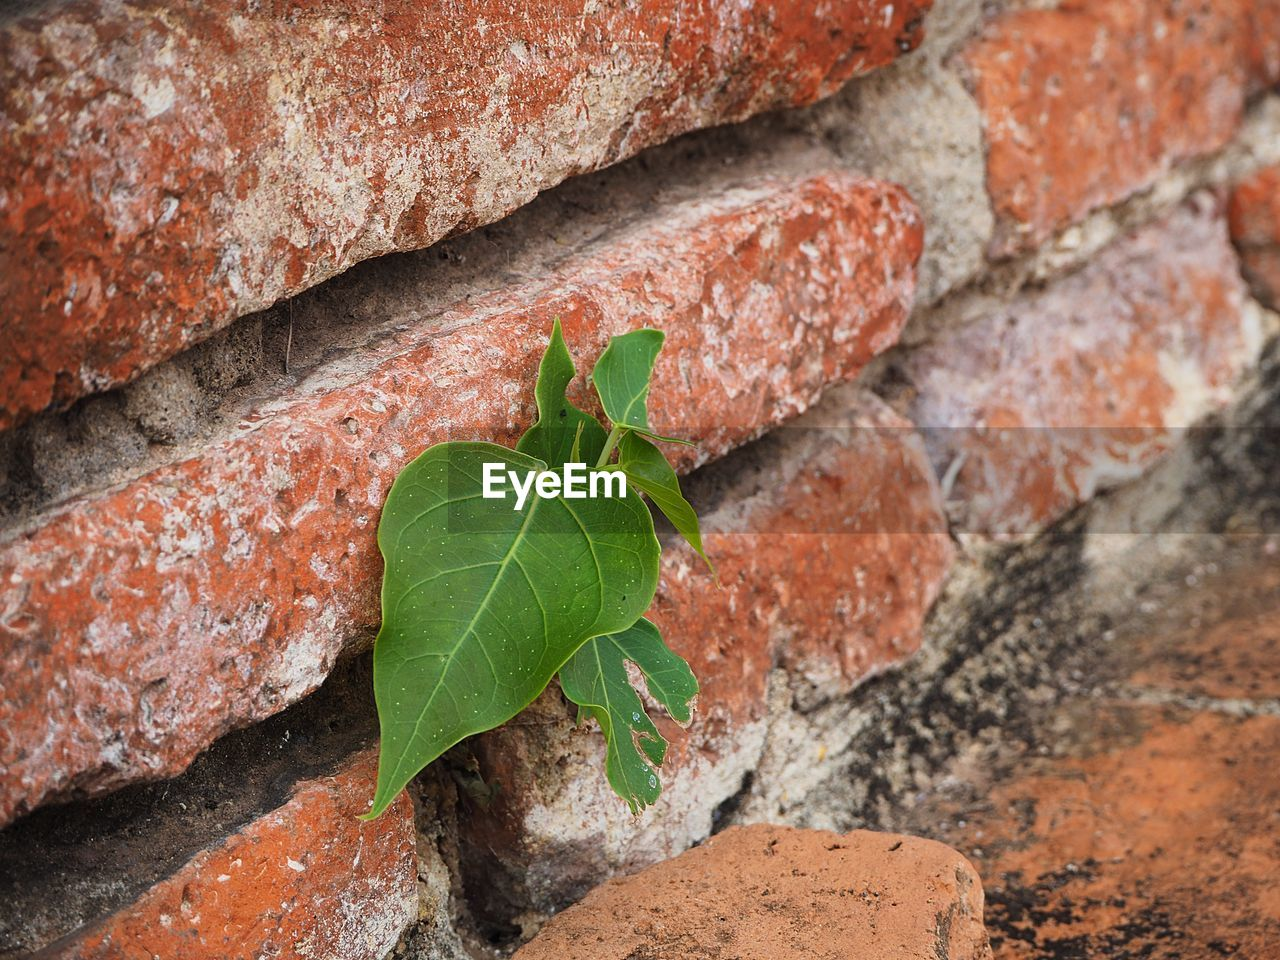 leaf, plant part, close-up, brick, no people, brick wall, wall - building feature, nature, plant, focus on foreground, day, wall, outdoors, green color, selective focus, textured, freshness, red, high angle view, architecture, concrete